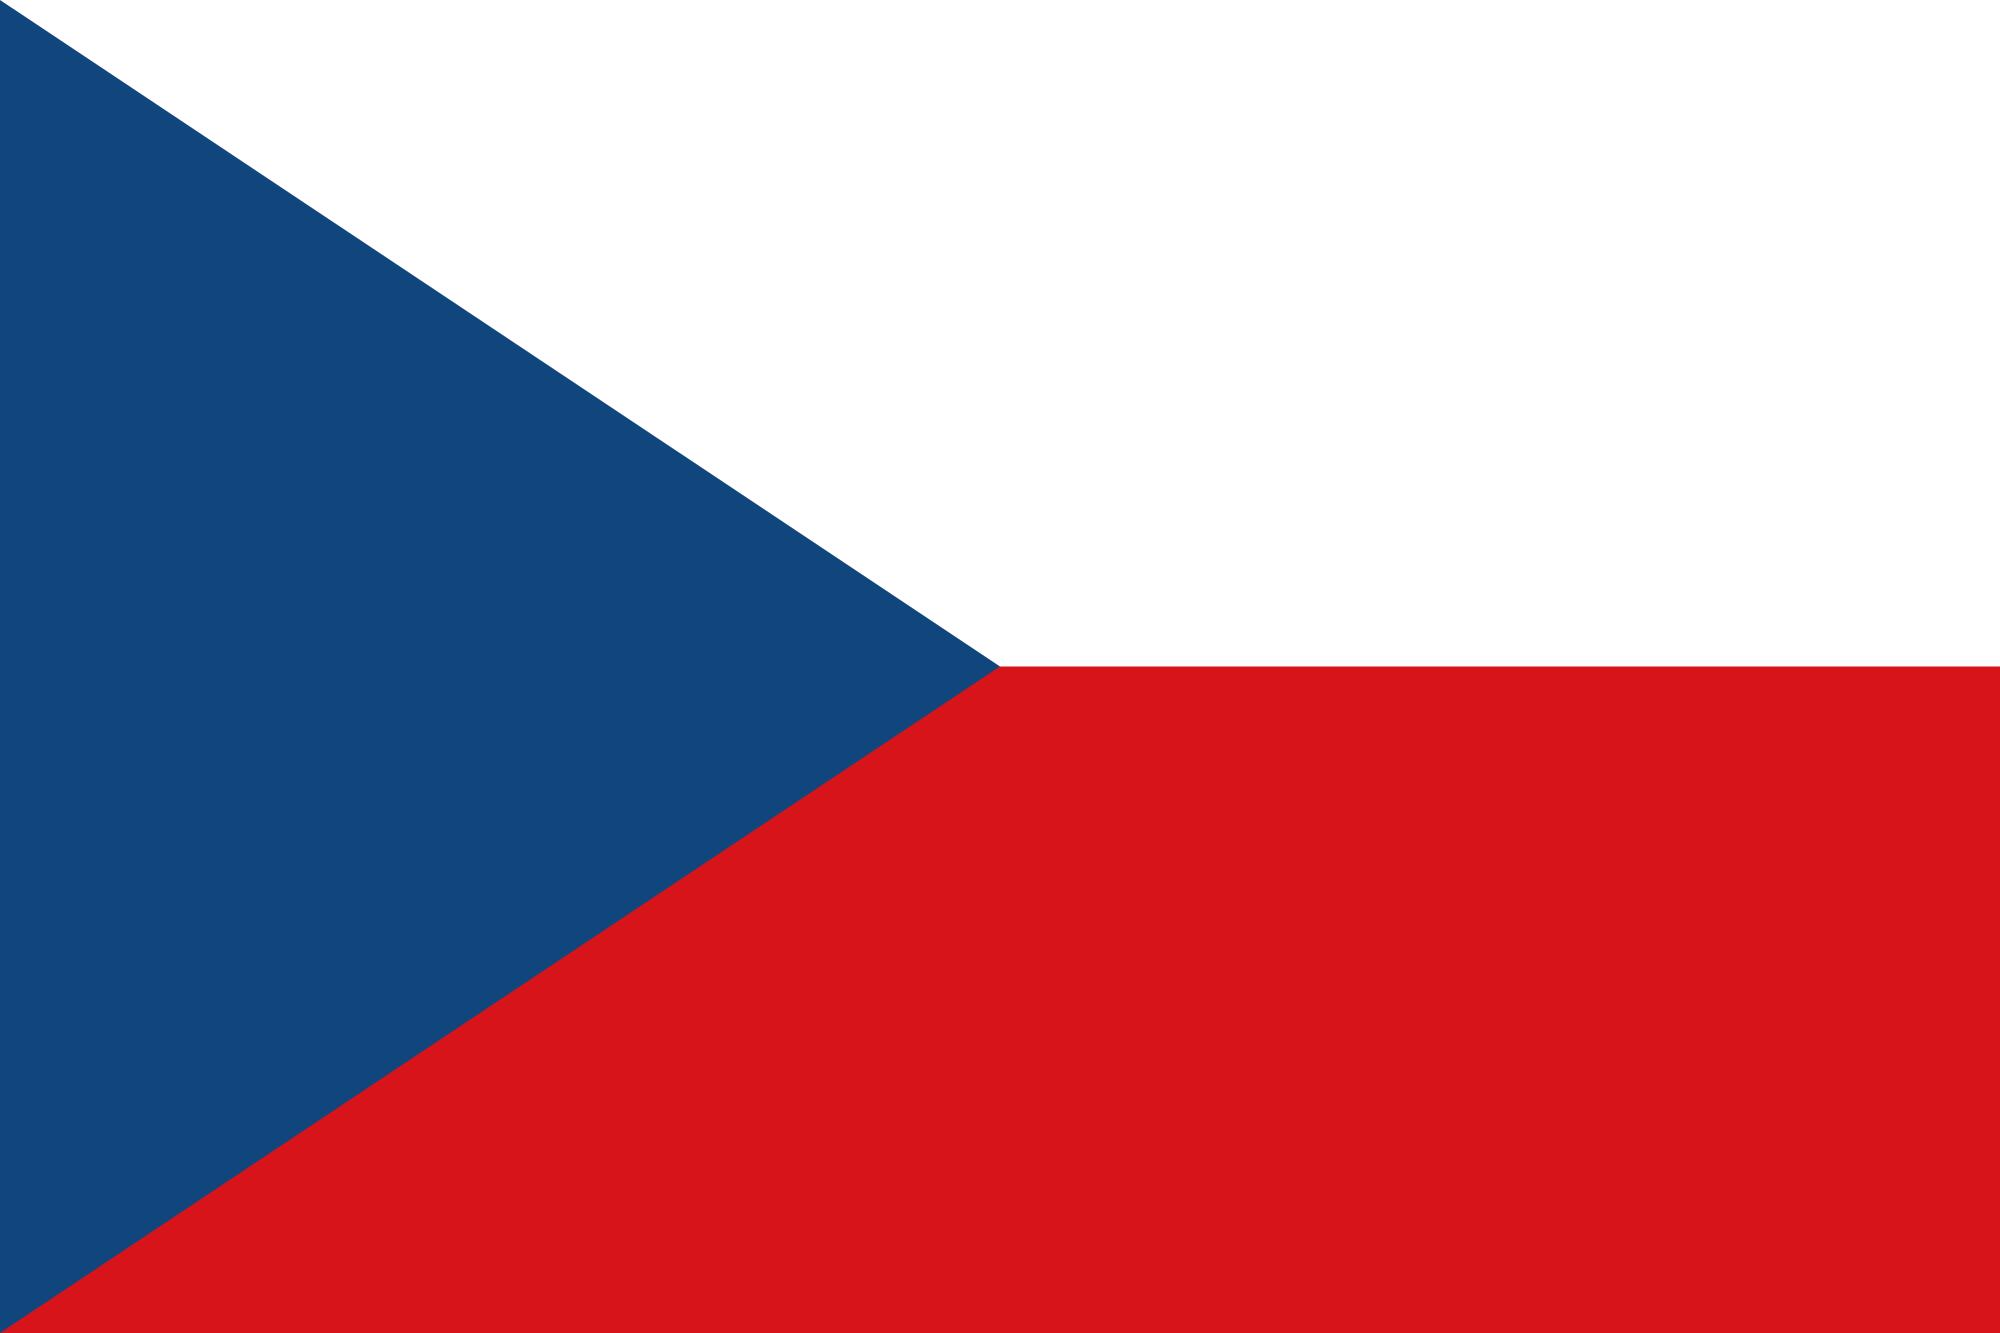 Czech Republic Flag Wallpapers for Android   APK Download 2000x1333